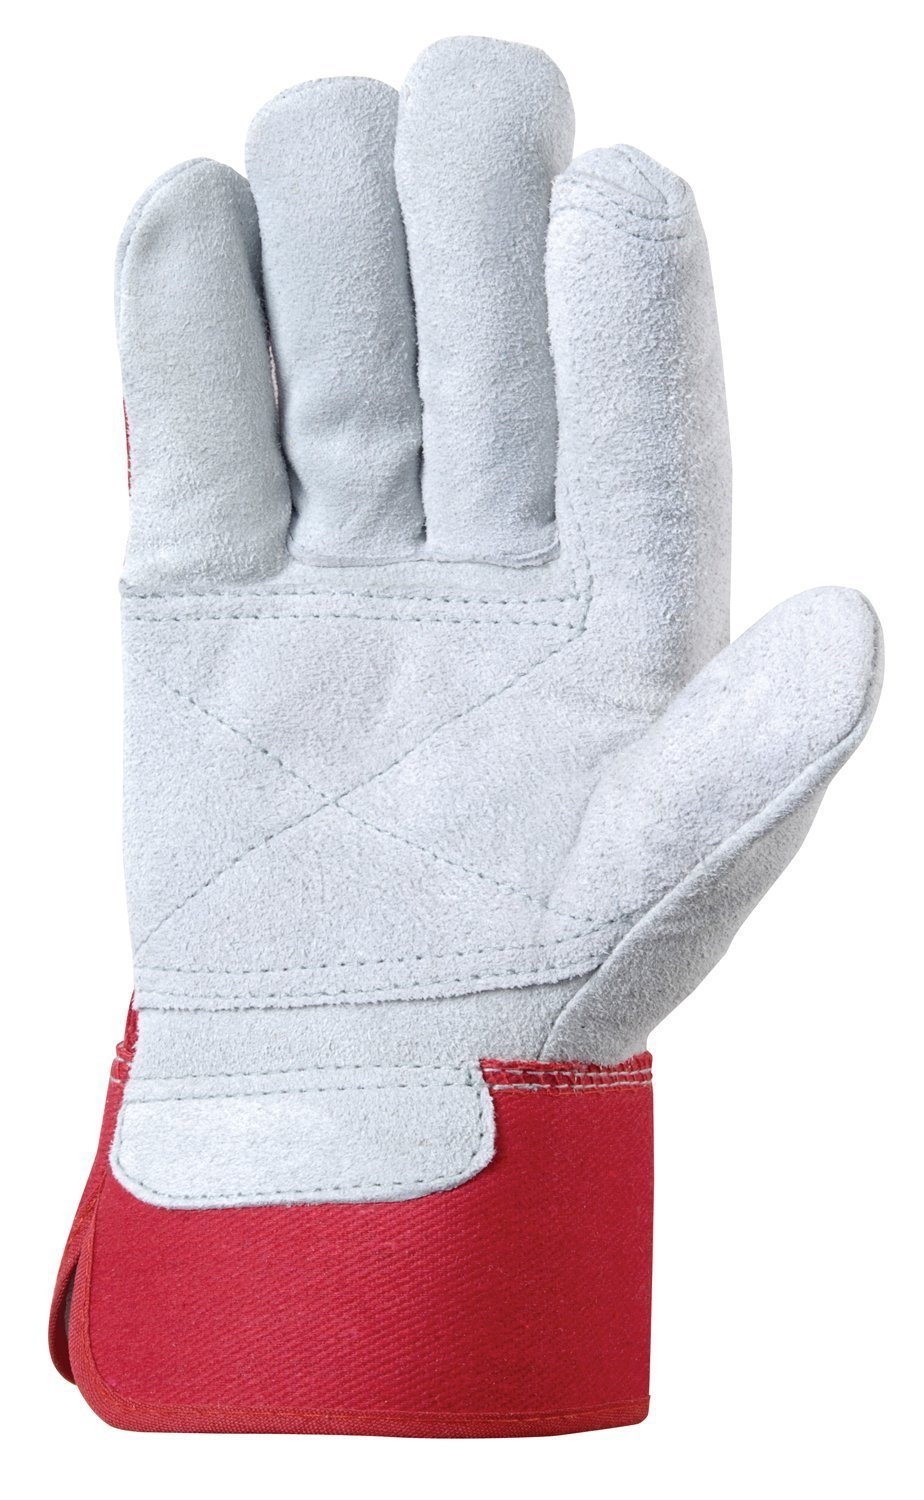 Insulated leather work gloves amazon - Wells Lamont Leather Work Gloves With Safety Cuff Double Palm Split Cowhide One Size 4050 Work Gloves Men Amazon Com